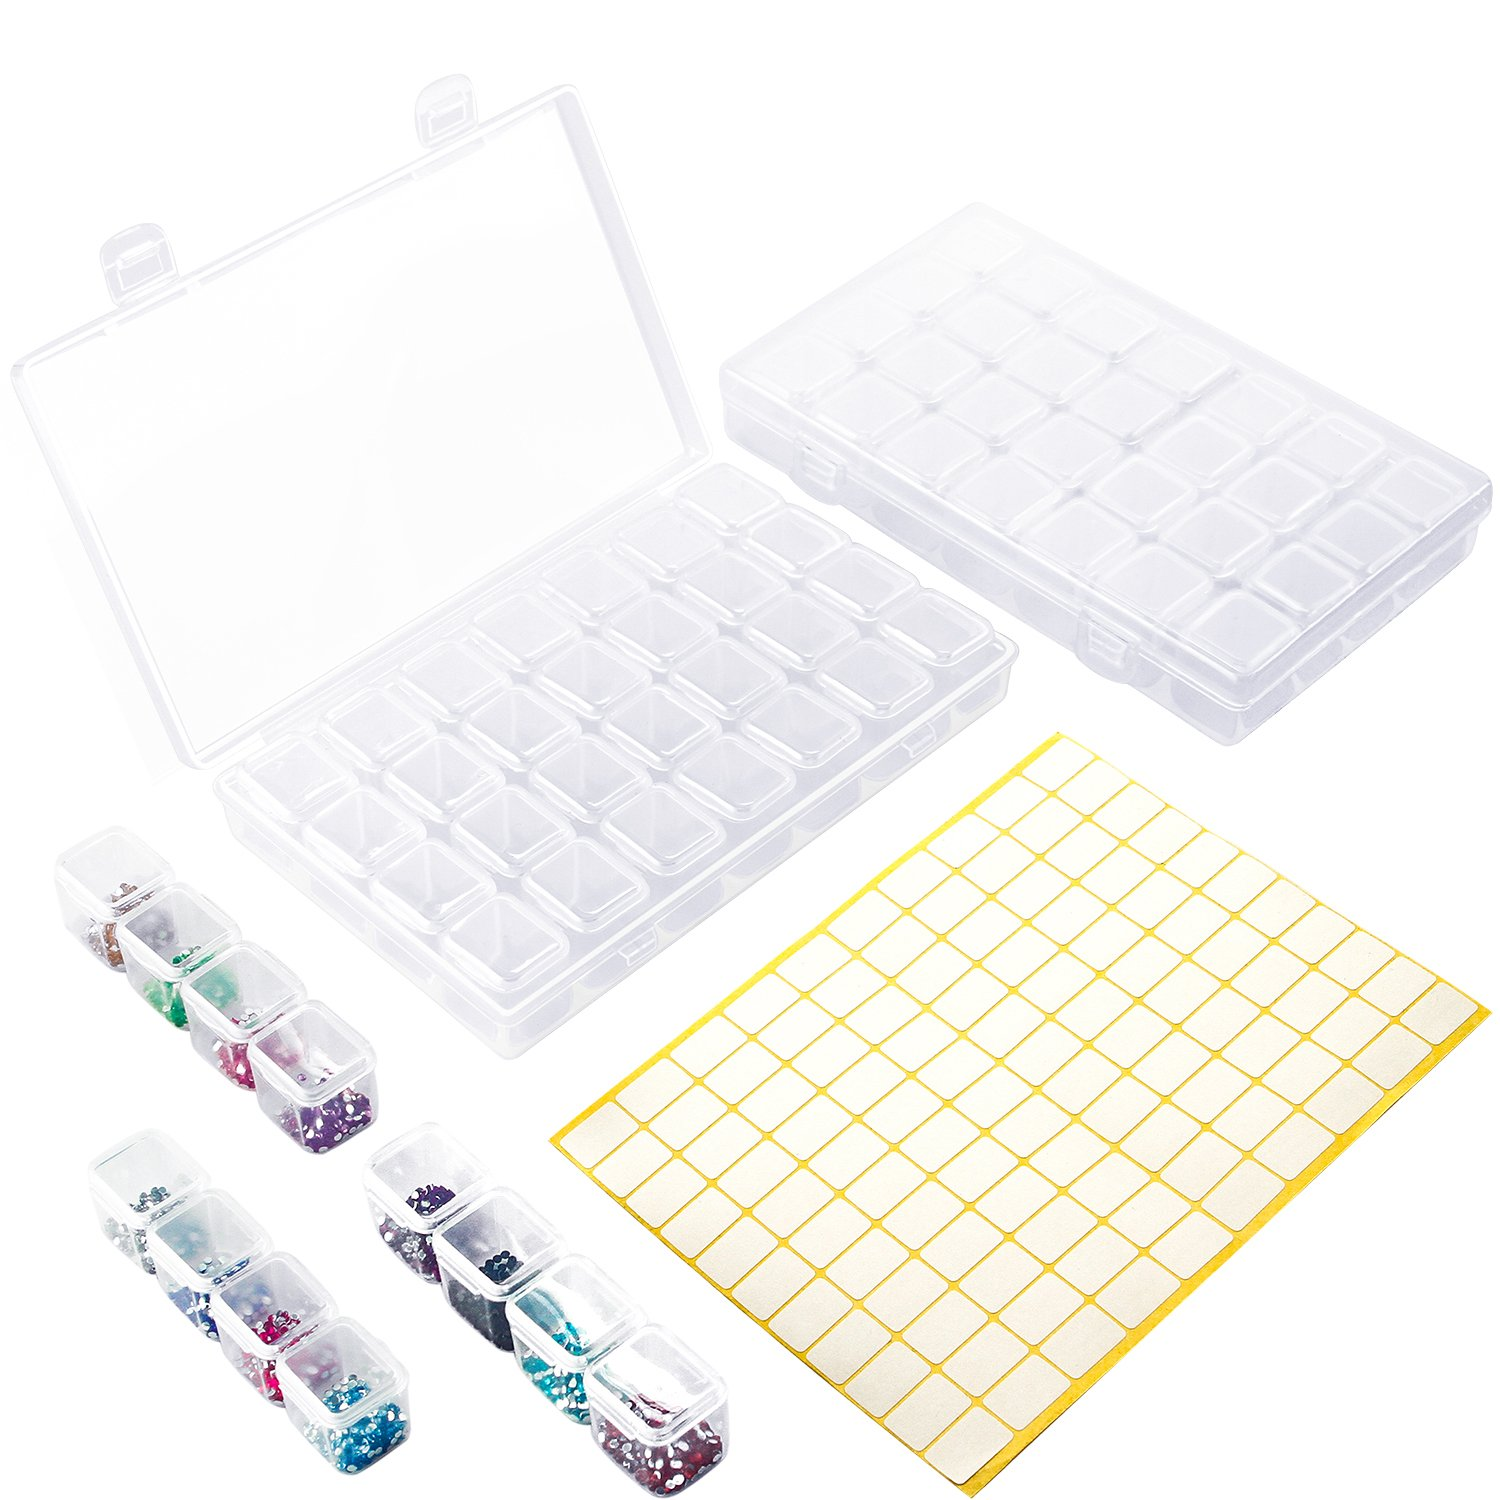 Aneco 2 Pack 28 Slots Diamond Painting Embroidery Box Diamond Painting Accessory Storage Box with 110 Pieces Craft Label Marker Sticker (2) 4336934961